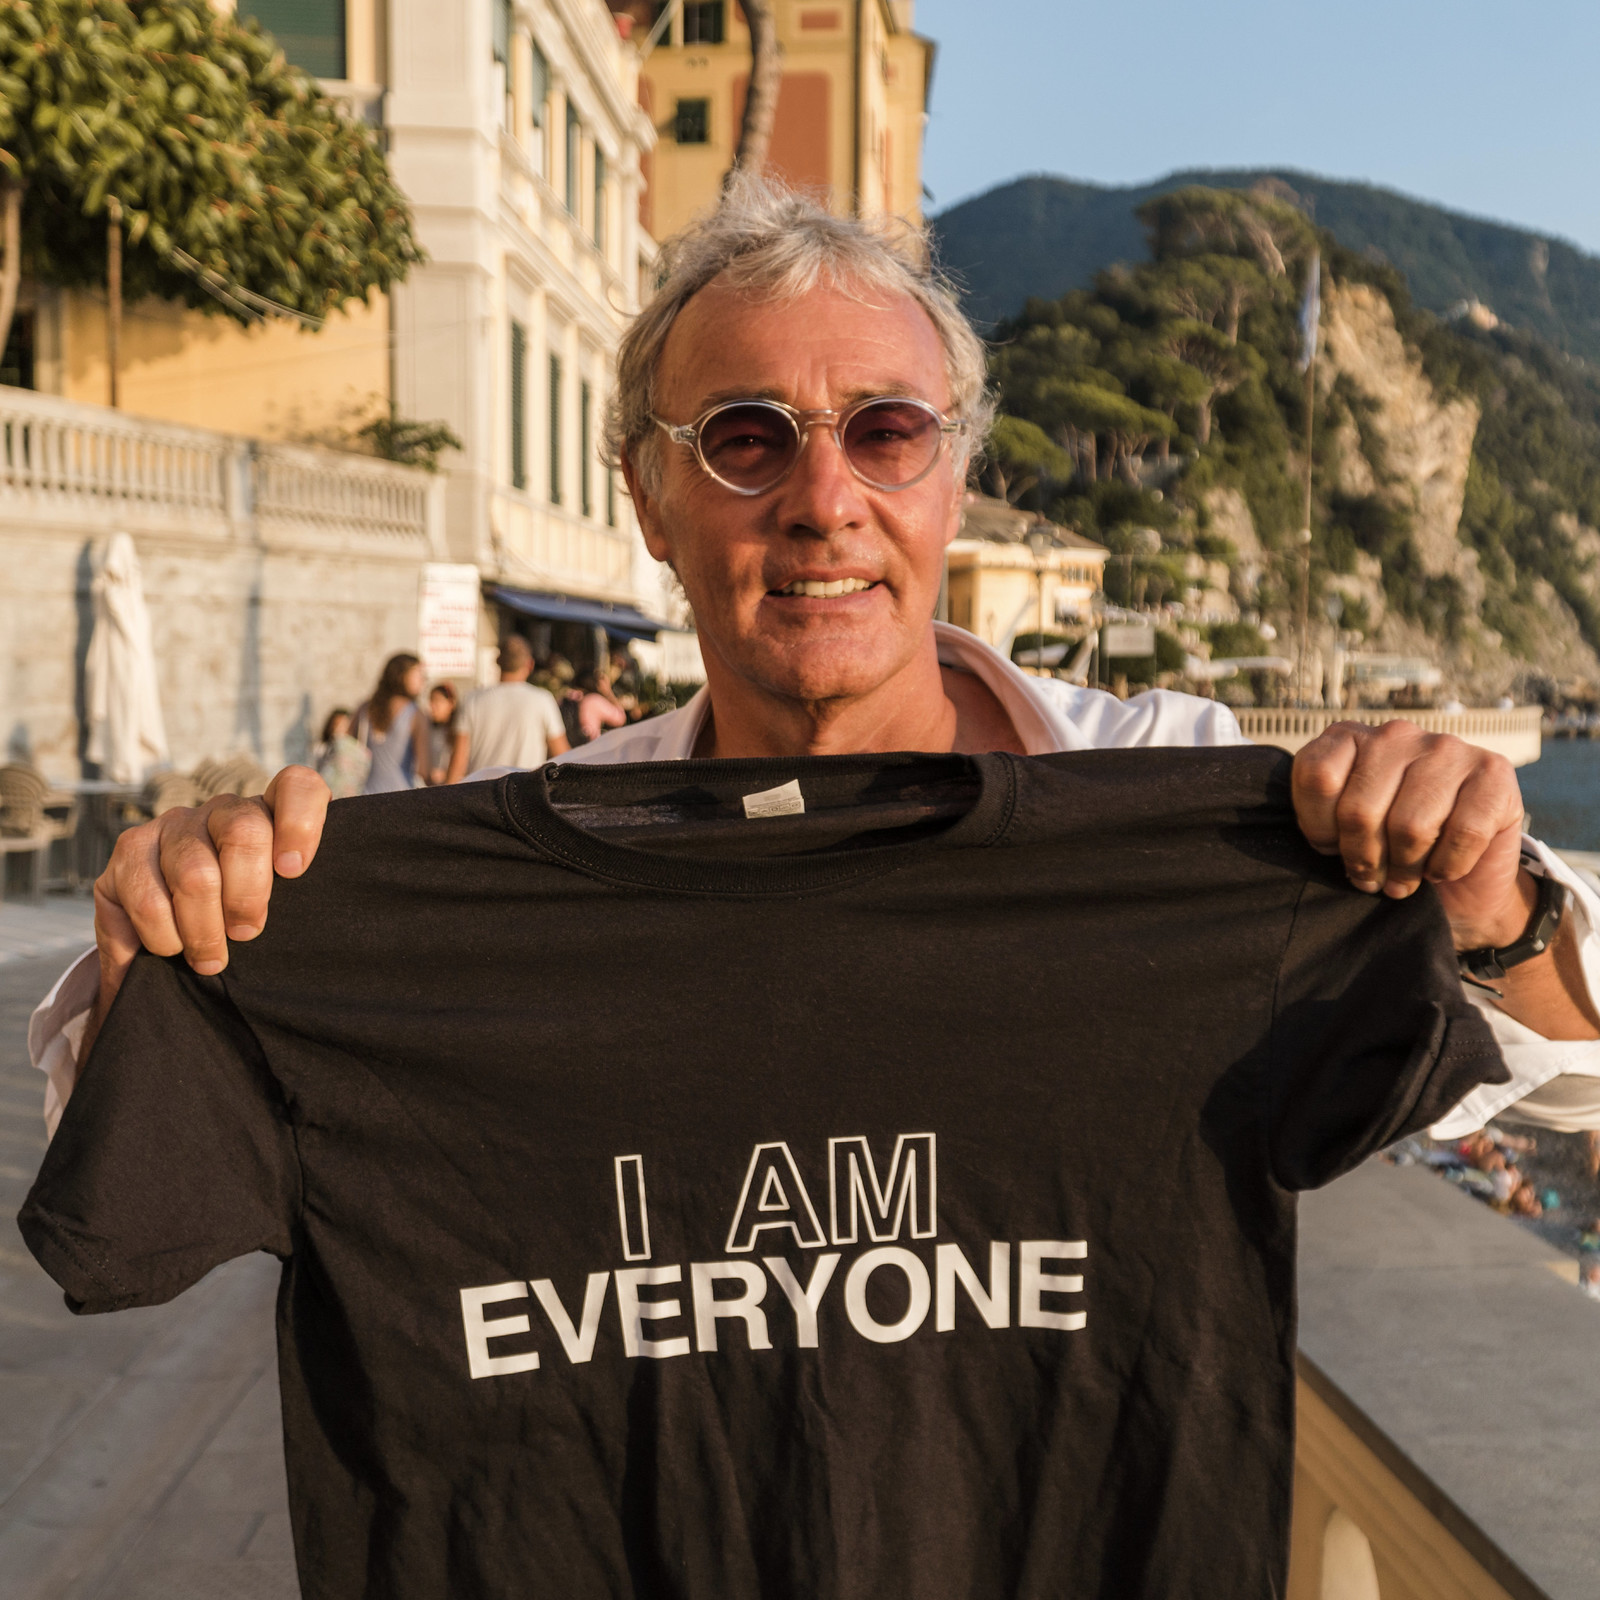 a photo of Massimo Giletti holding Everyone's shirt